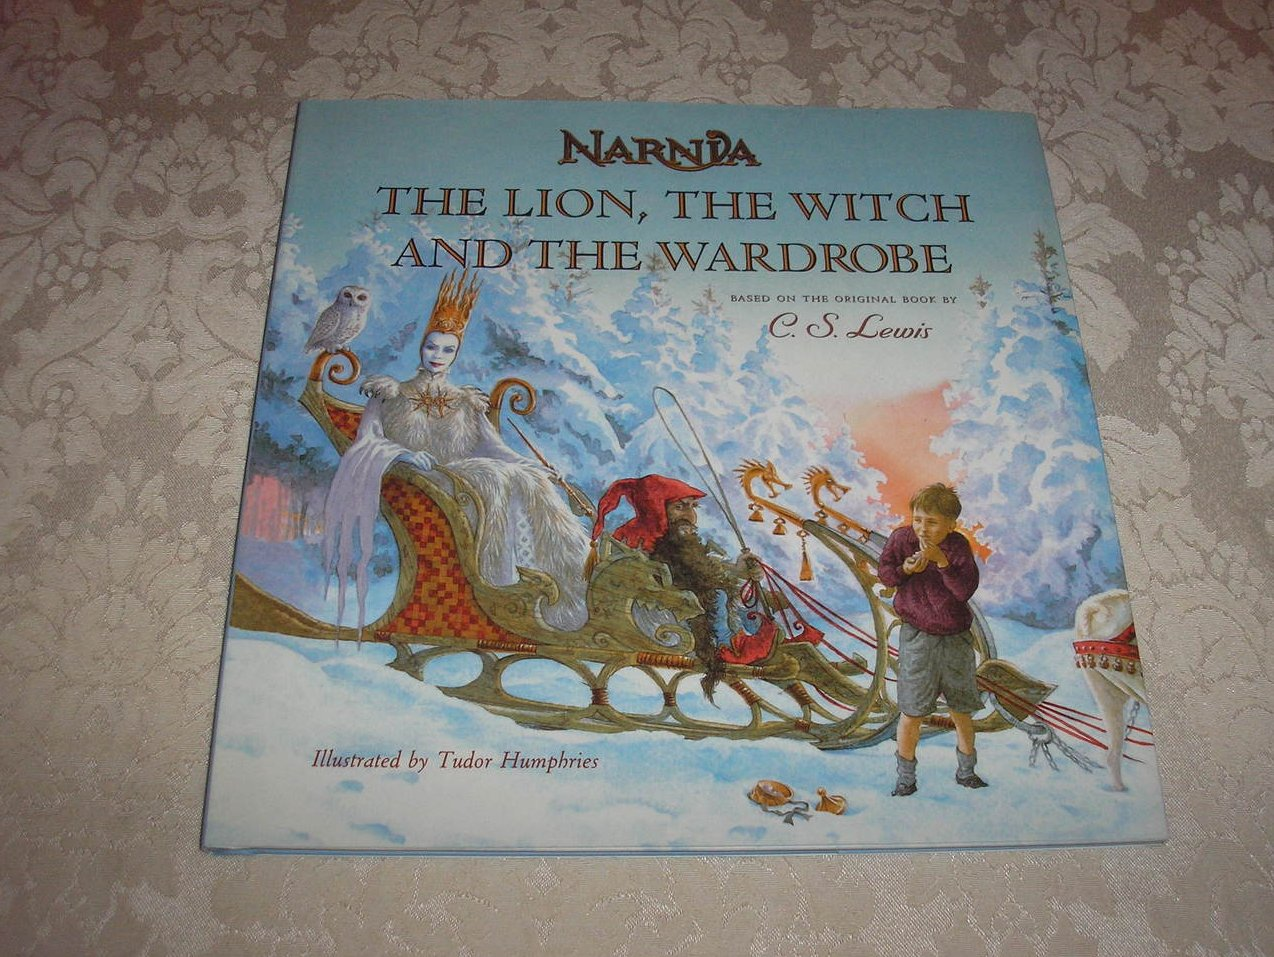 an analysis of the lion the witch and the wardrobe a novel by c s lewis This study guide to the lion, the witch, and the wardrobe was developed under the auspices of the cs lewis foundation by rebekah choat (home educator for seventeen years.